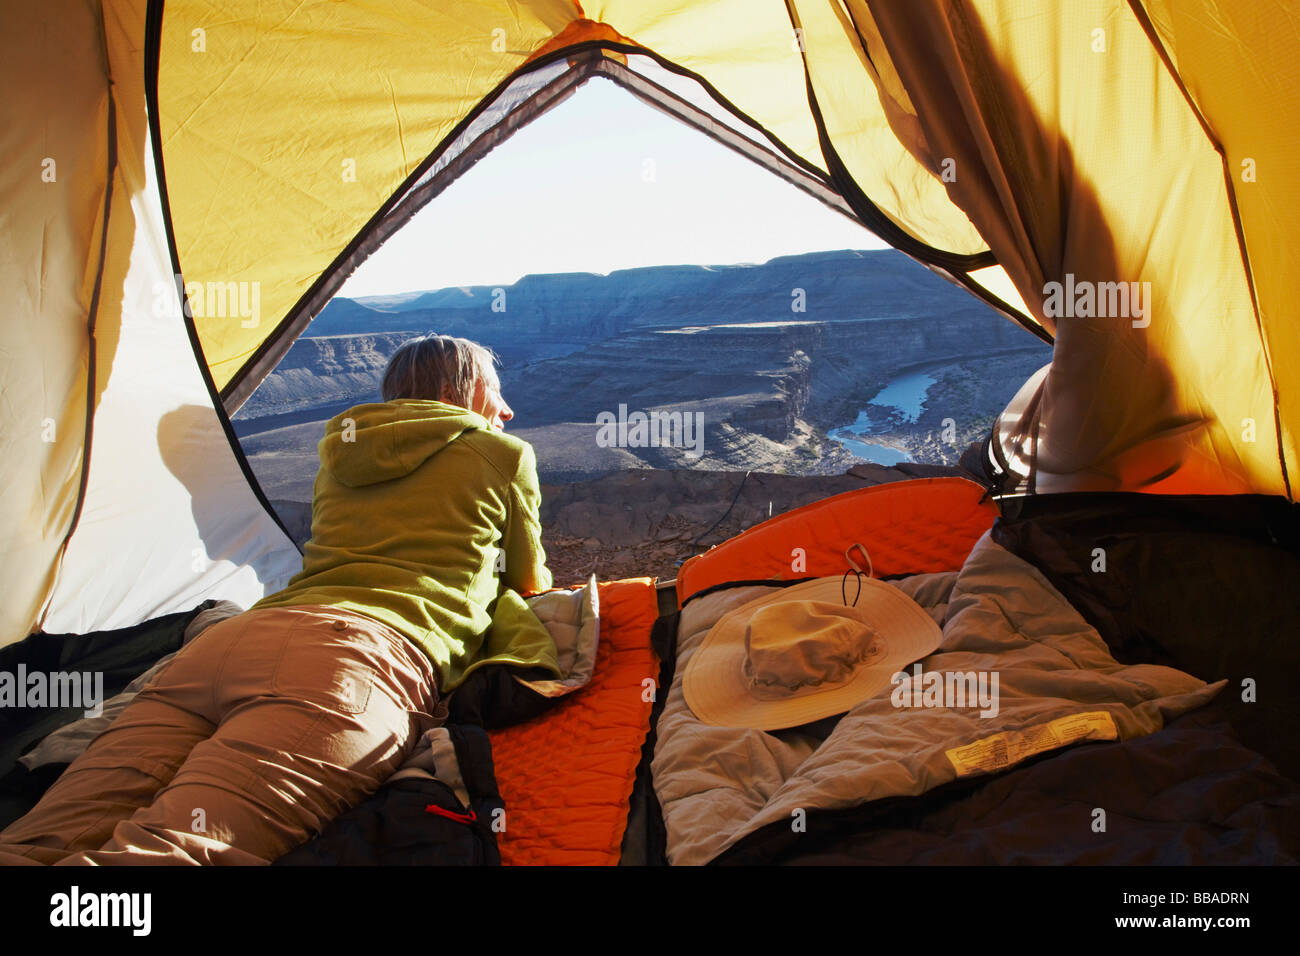 Une femme couchée dans une tente, Horse Shoe Bend, Fish River Canyon, Namibie Photo Stock